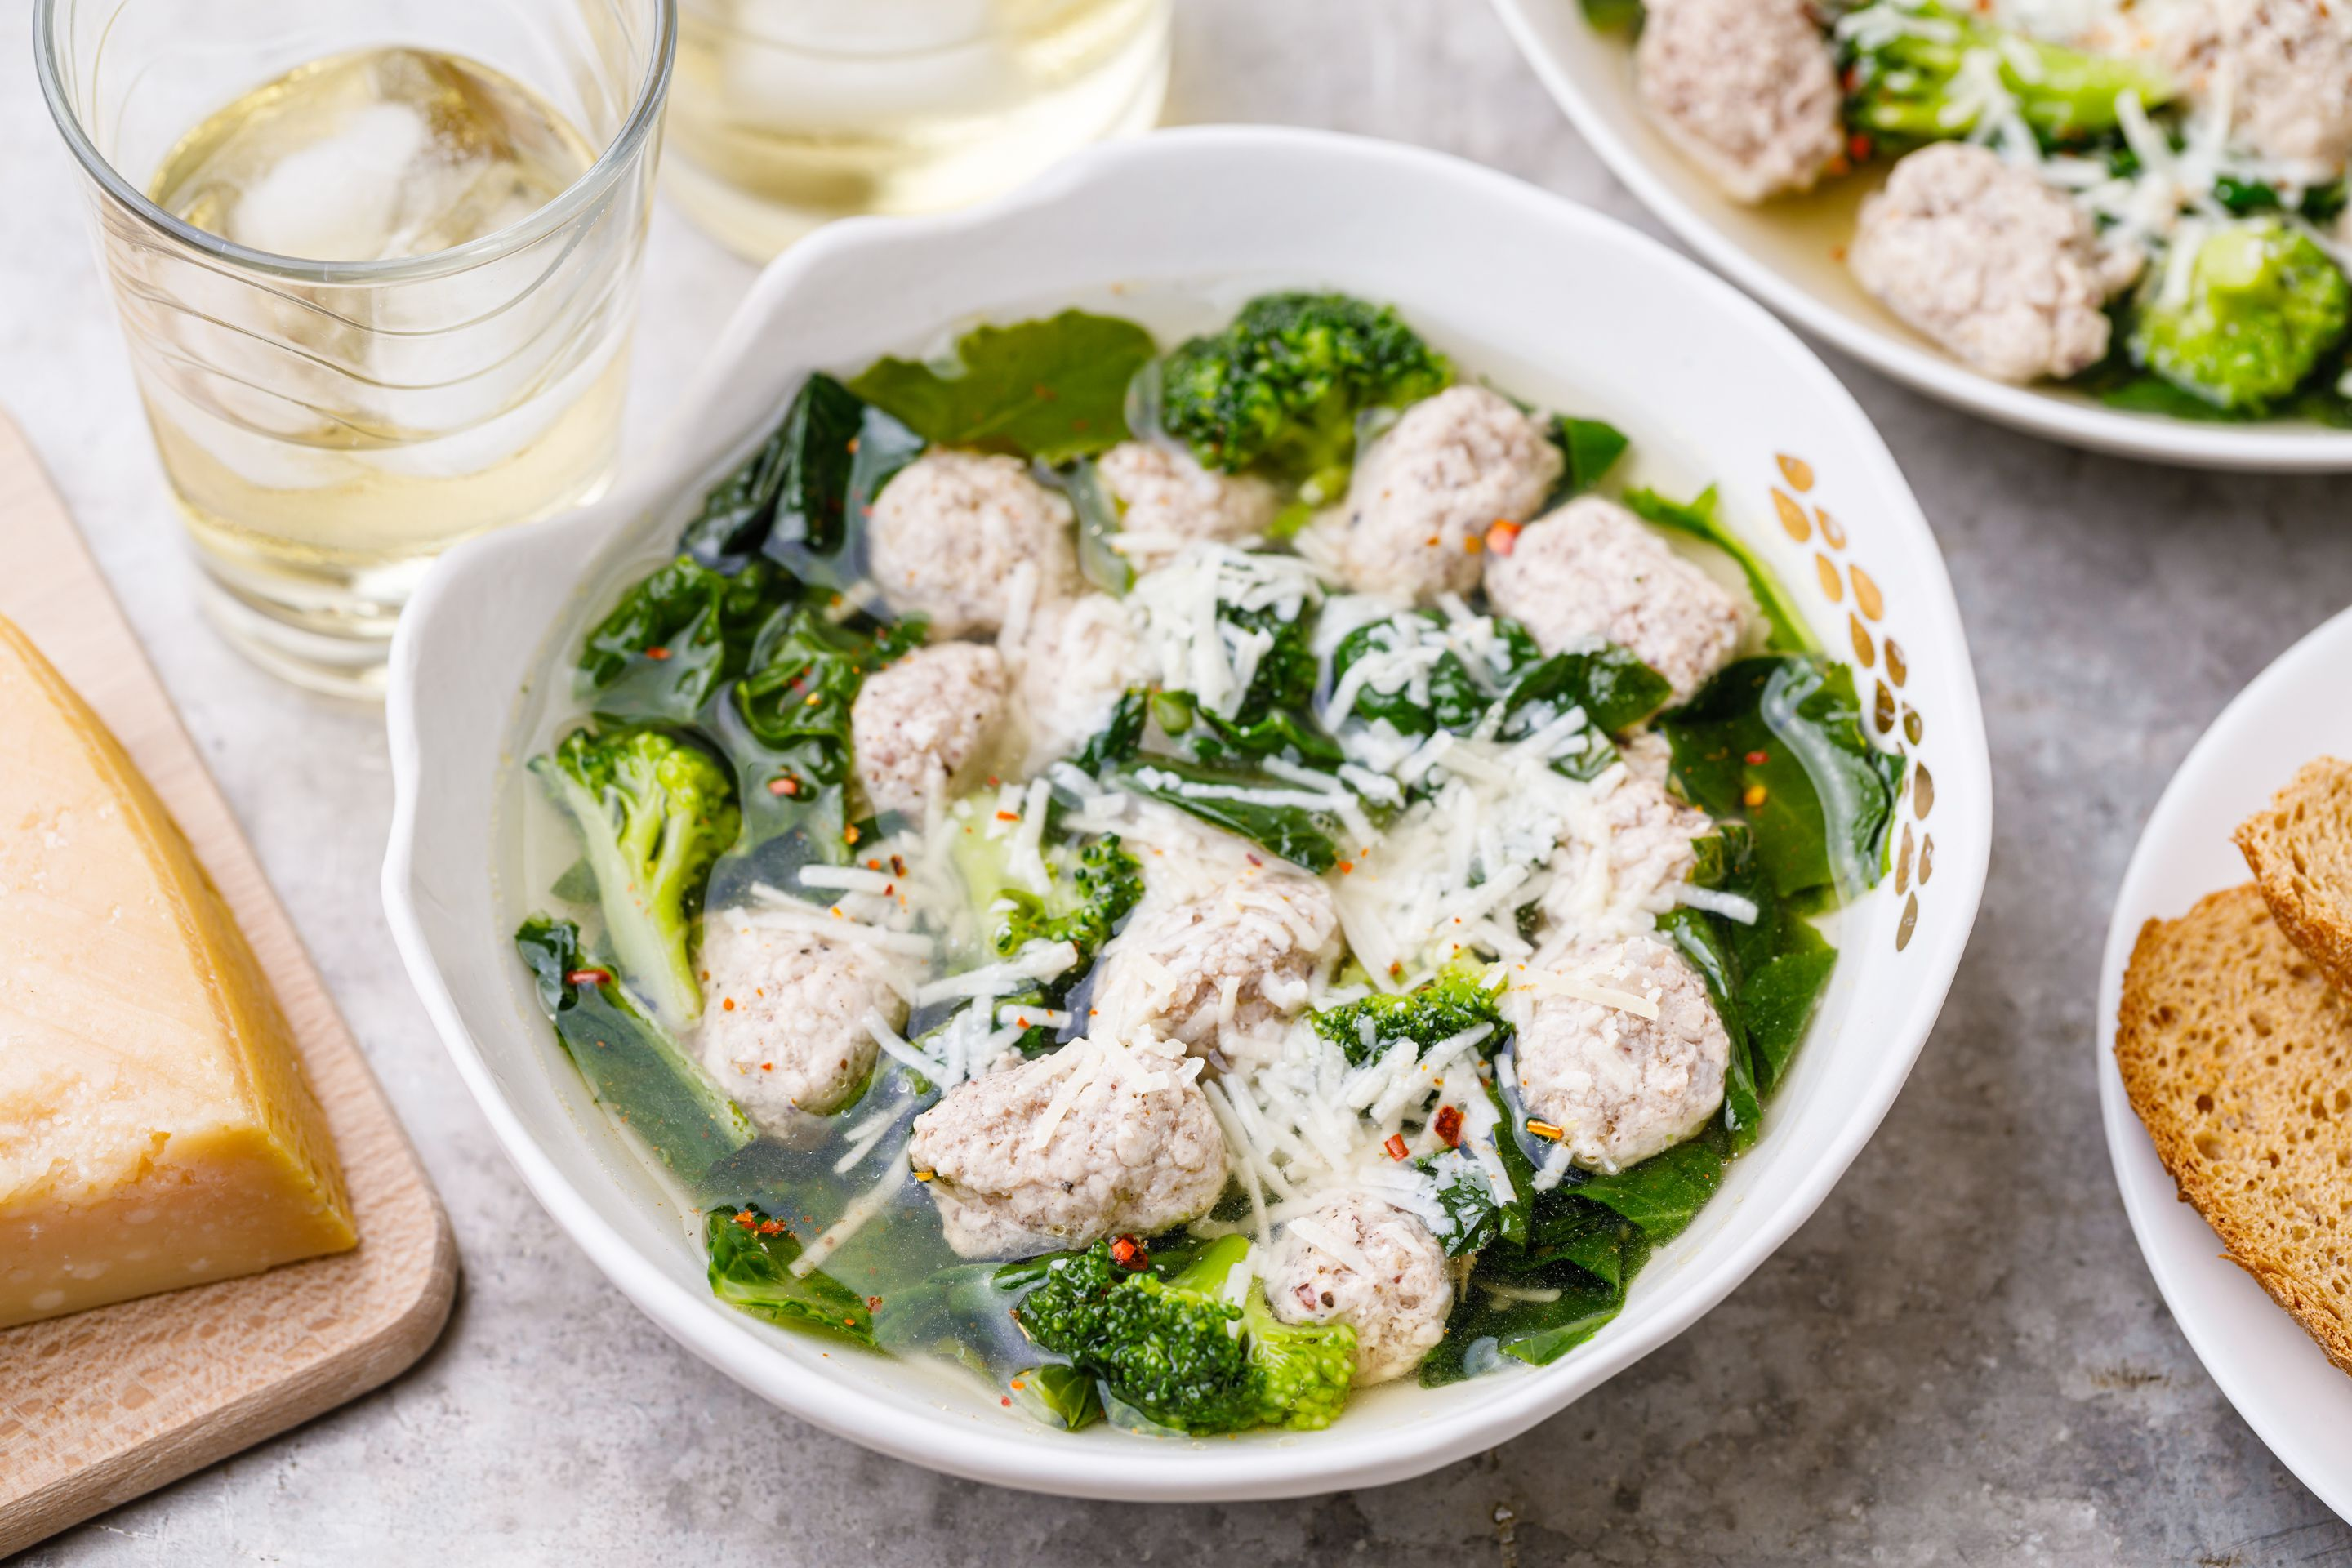 How to Make Italian Wedding Soup (Minestra Maritata)